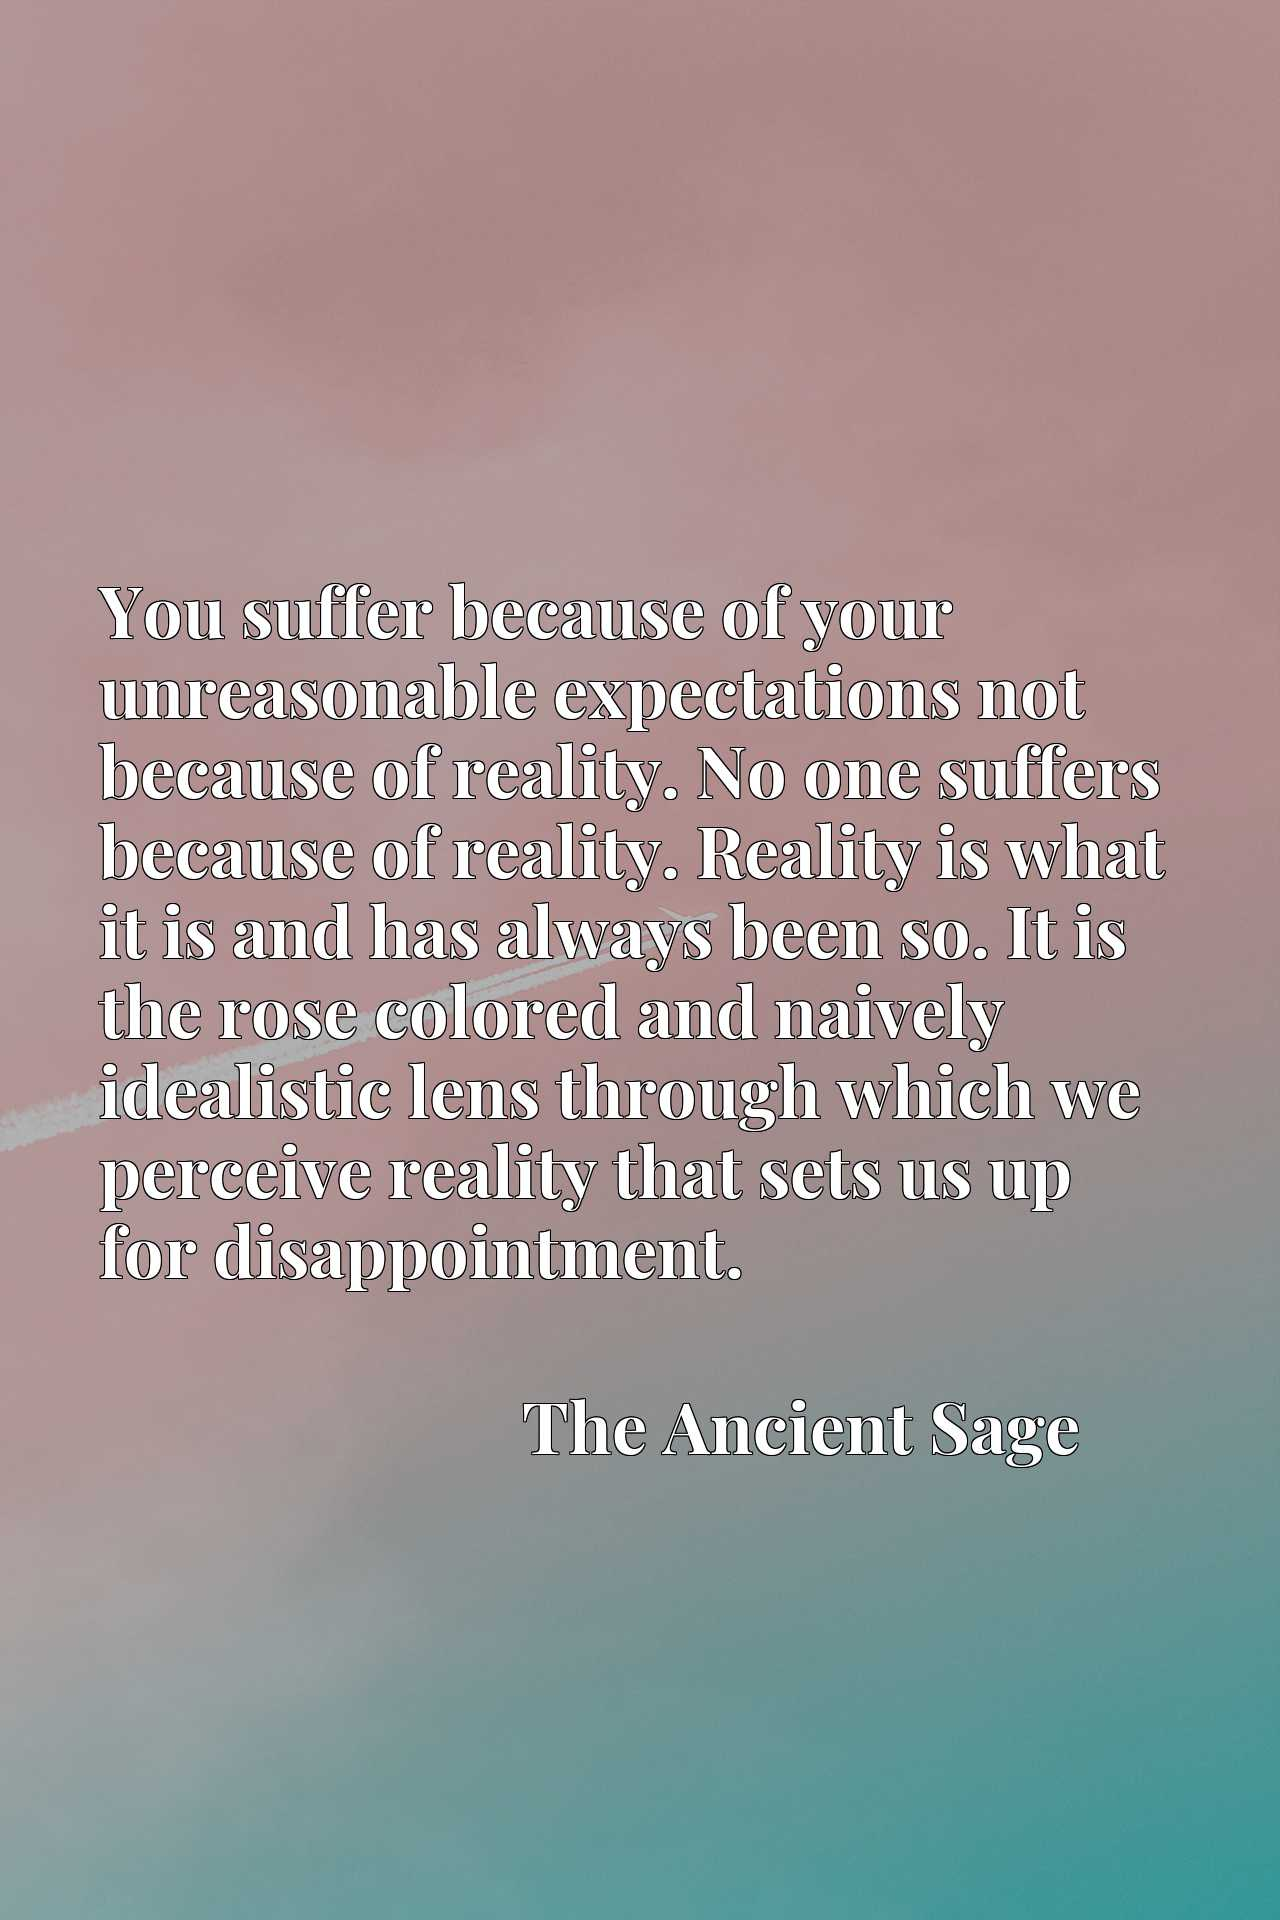 You suffer because of your unreasonable expectations not because of reality. No one suffers because of reality. Reality is what it is and has always been so. It is the rose colored and naively idealistic lens through which we perceive reality that sets us up for disappointment.